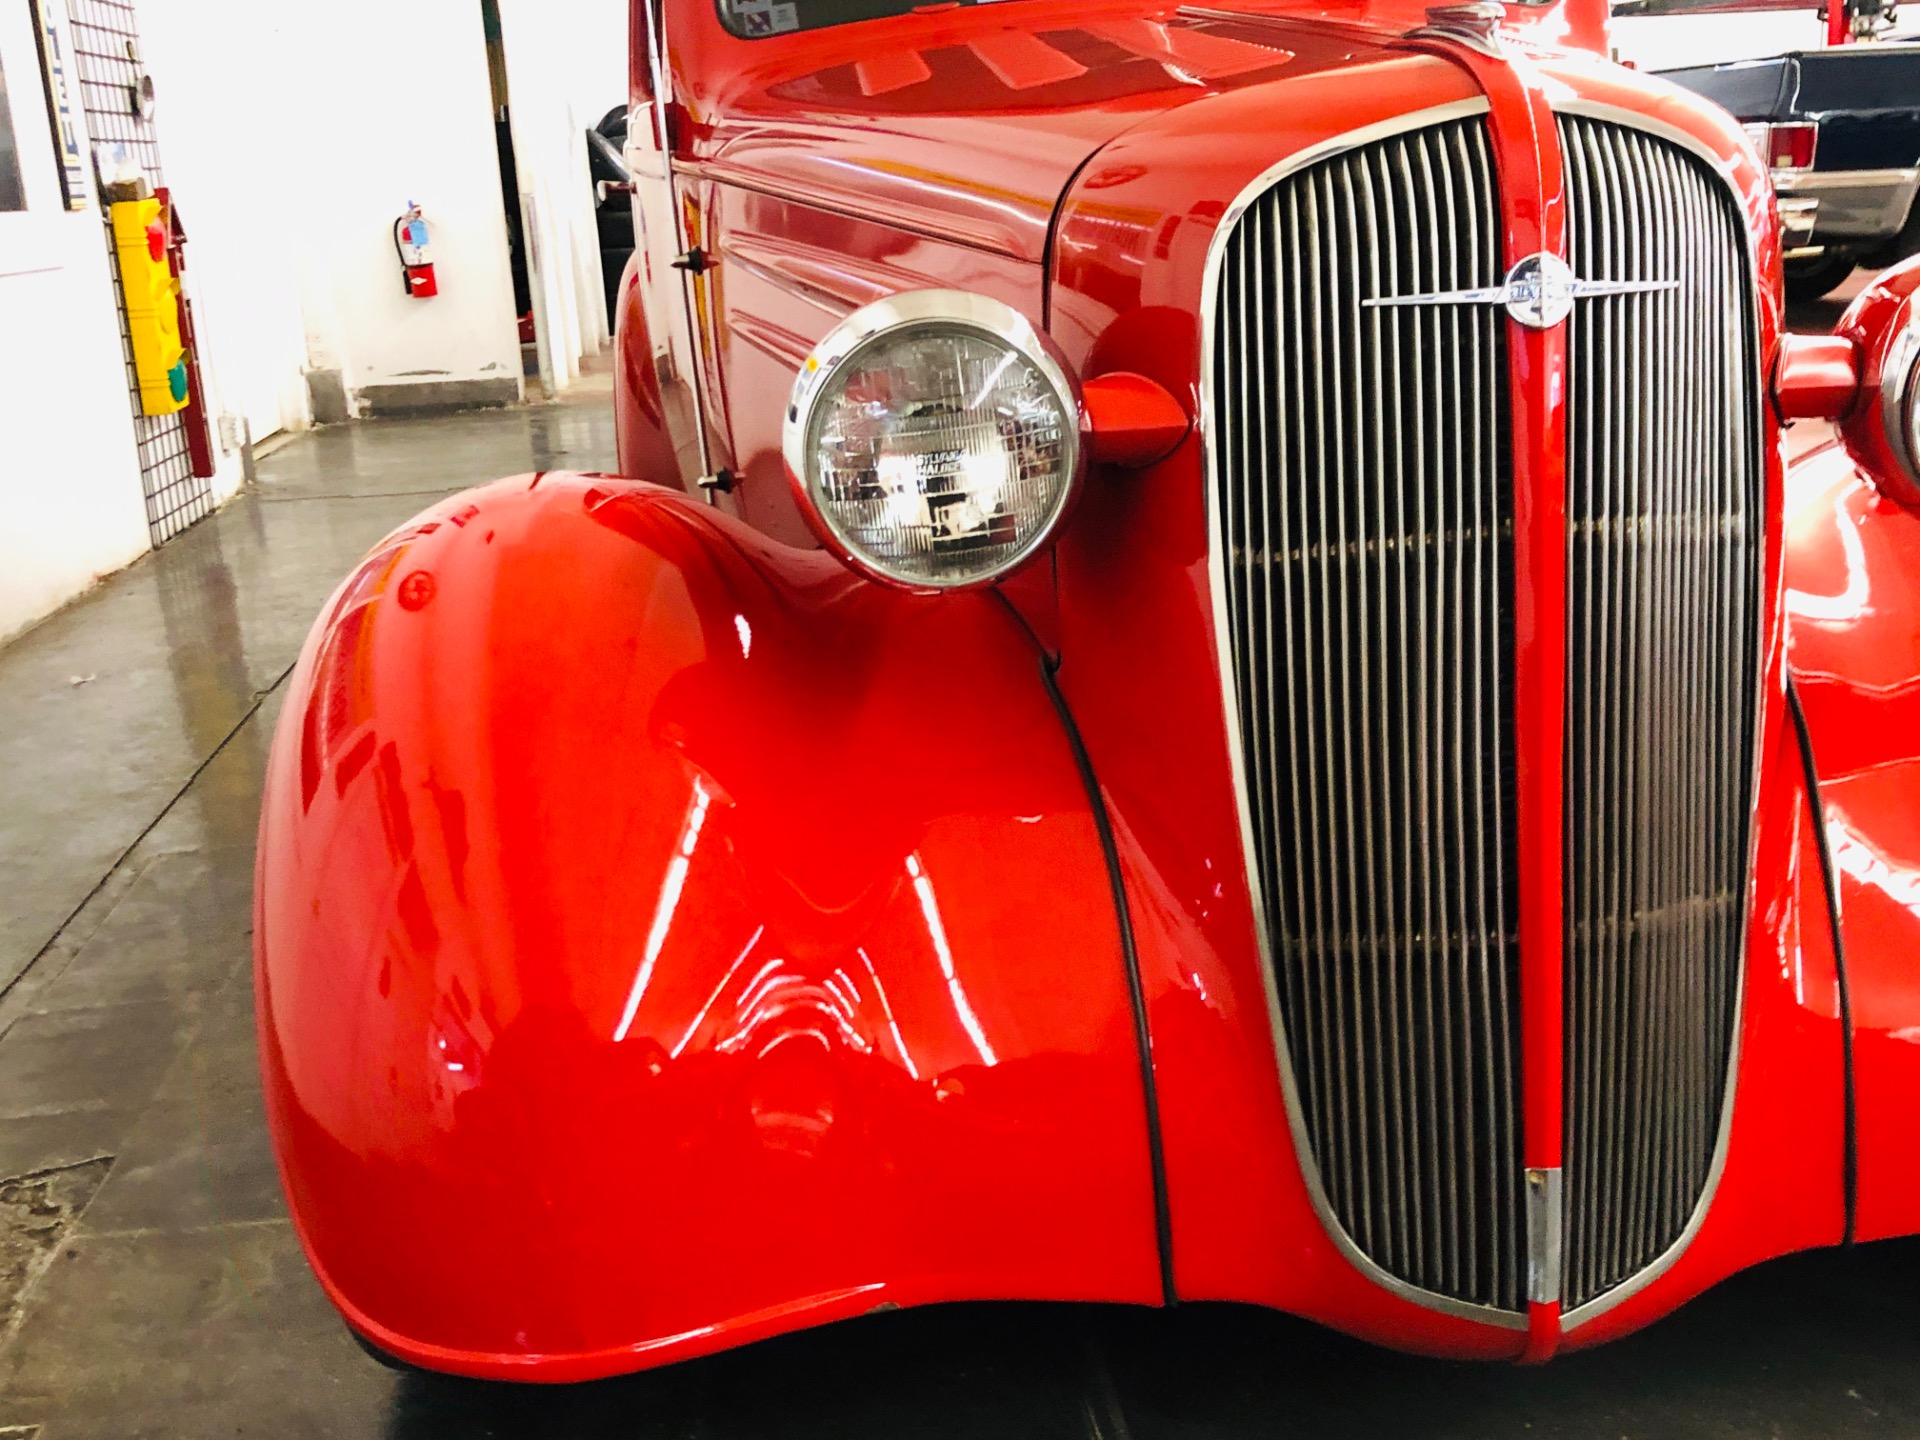 Used 1936 Chevrolet Hot Rod / Street Rod - 2 DOOR SEDAN - VERY RELIABLE - CUSTOM COCA-COLA TRAILER - SEE VIDEO | Mundelein, IL